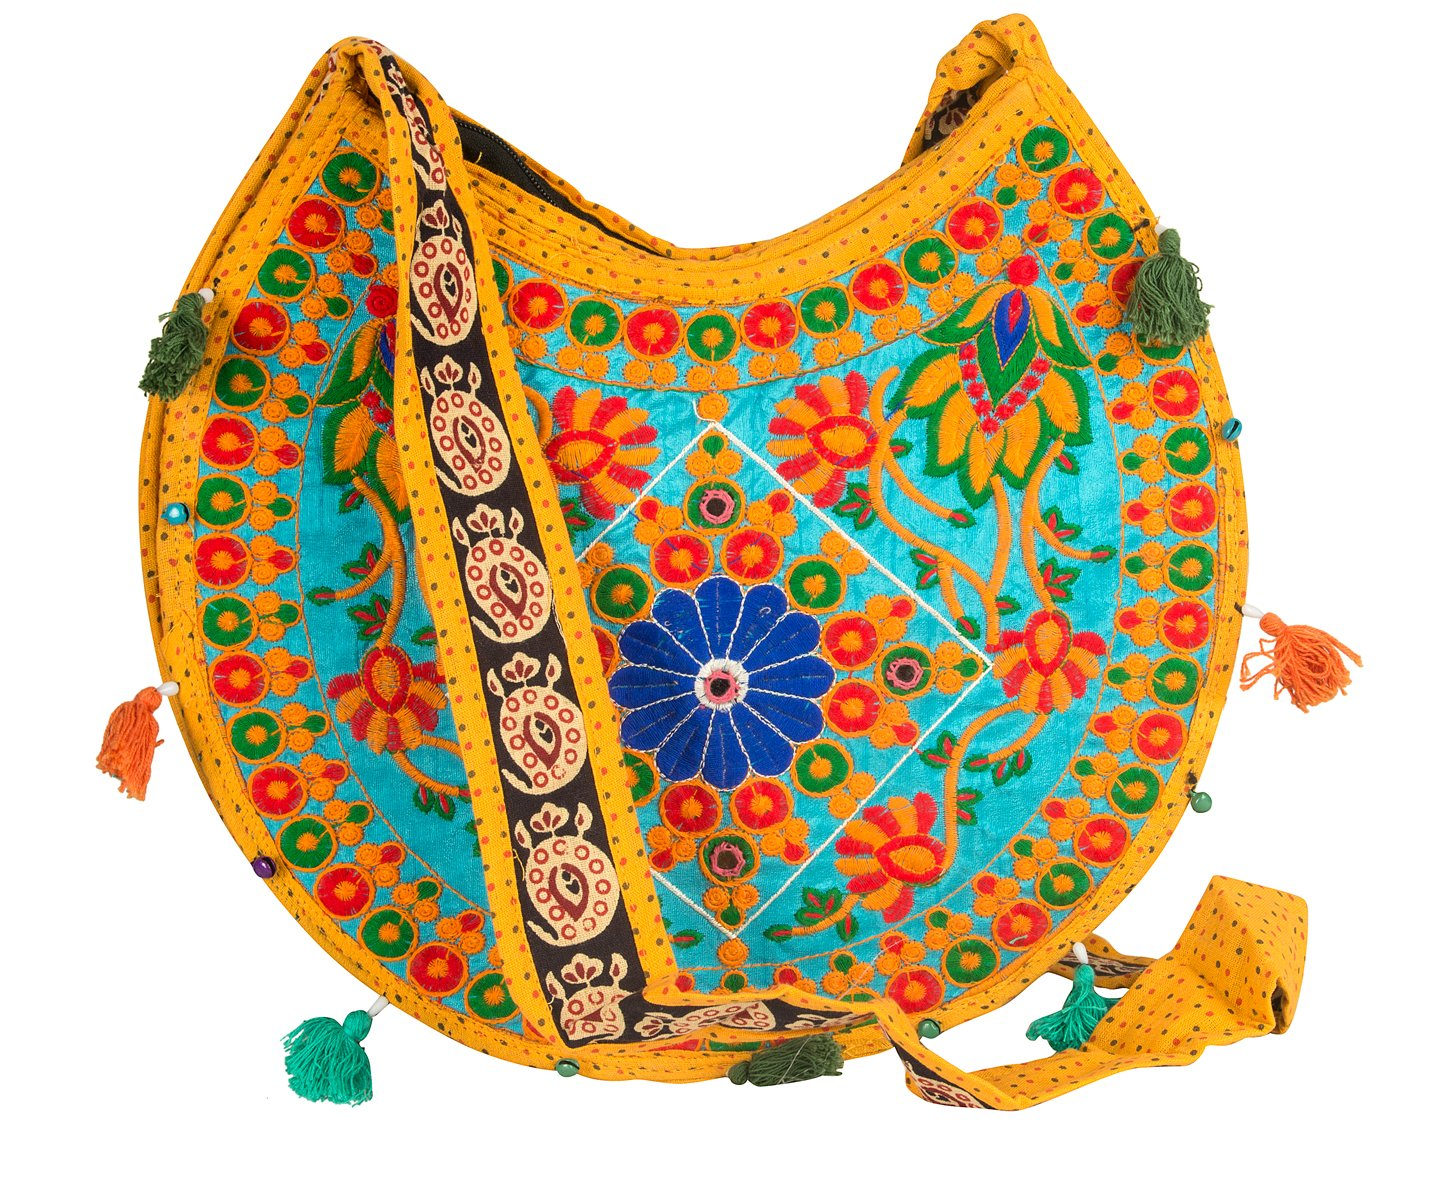 Floral Colorful Shoulder Bag Crossbody Hobo Satchel Hippie Boho Fashion Women Functional Stylish Everyday (Yellow Floral)